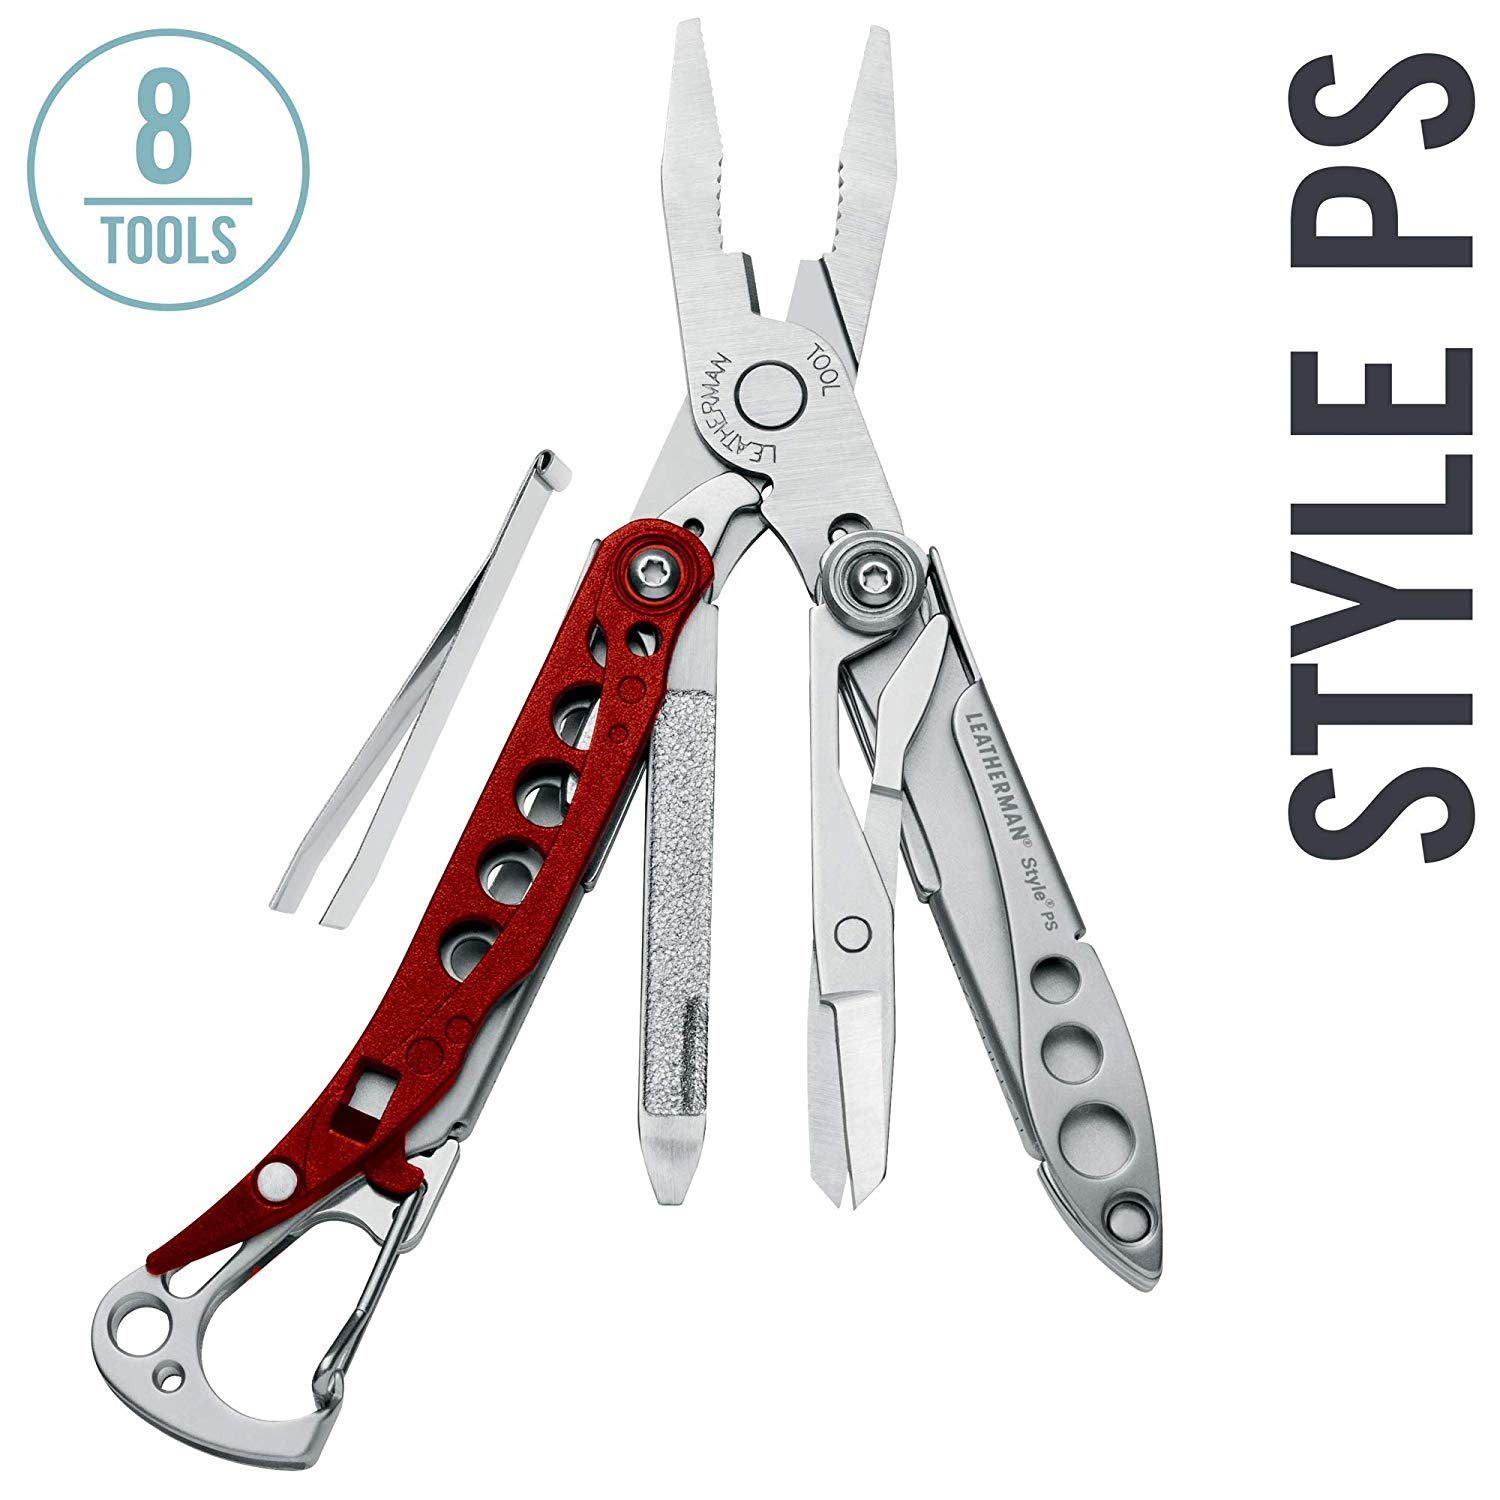 LEATHERMAN - Style PS Keychain Multitool With Spring-Action Scissors And Grooming Tools